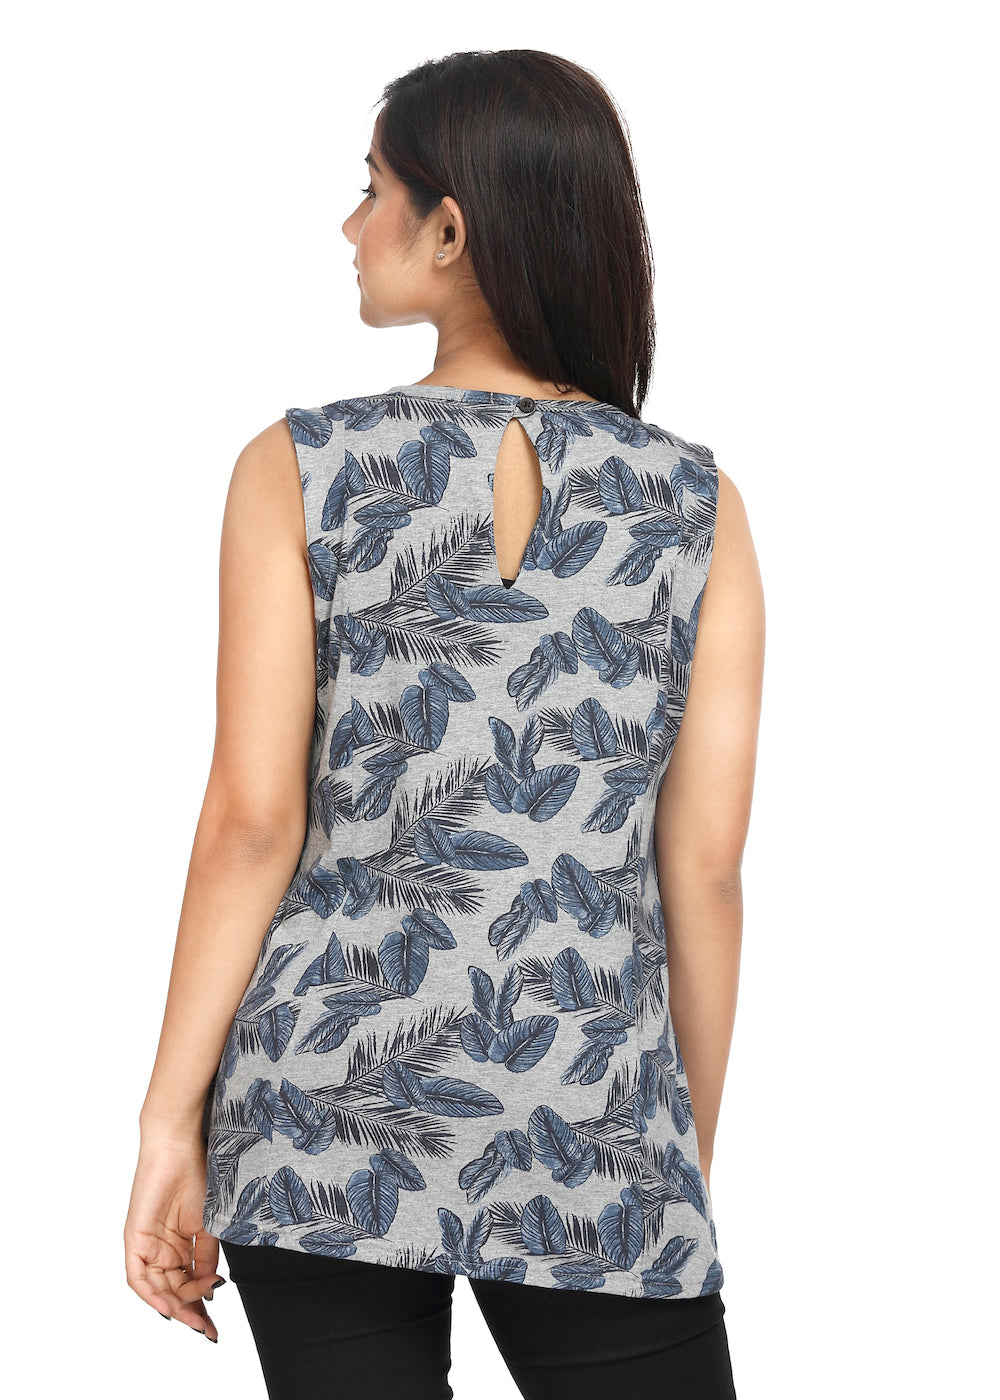 Grey Knit Sleeveless Top Blue Print - GENZEE